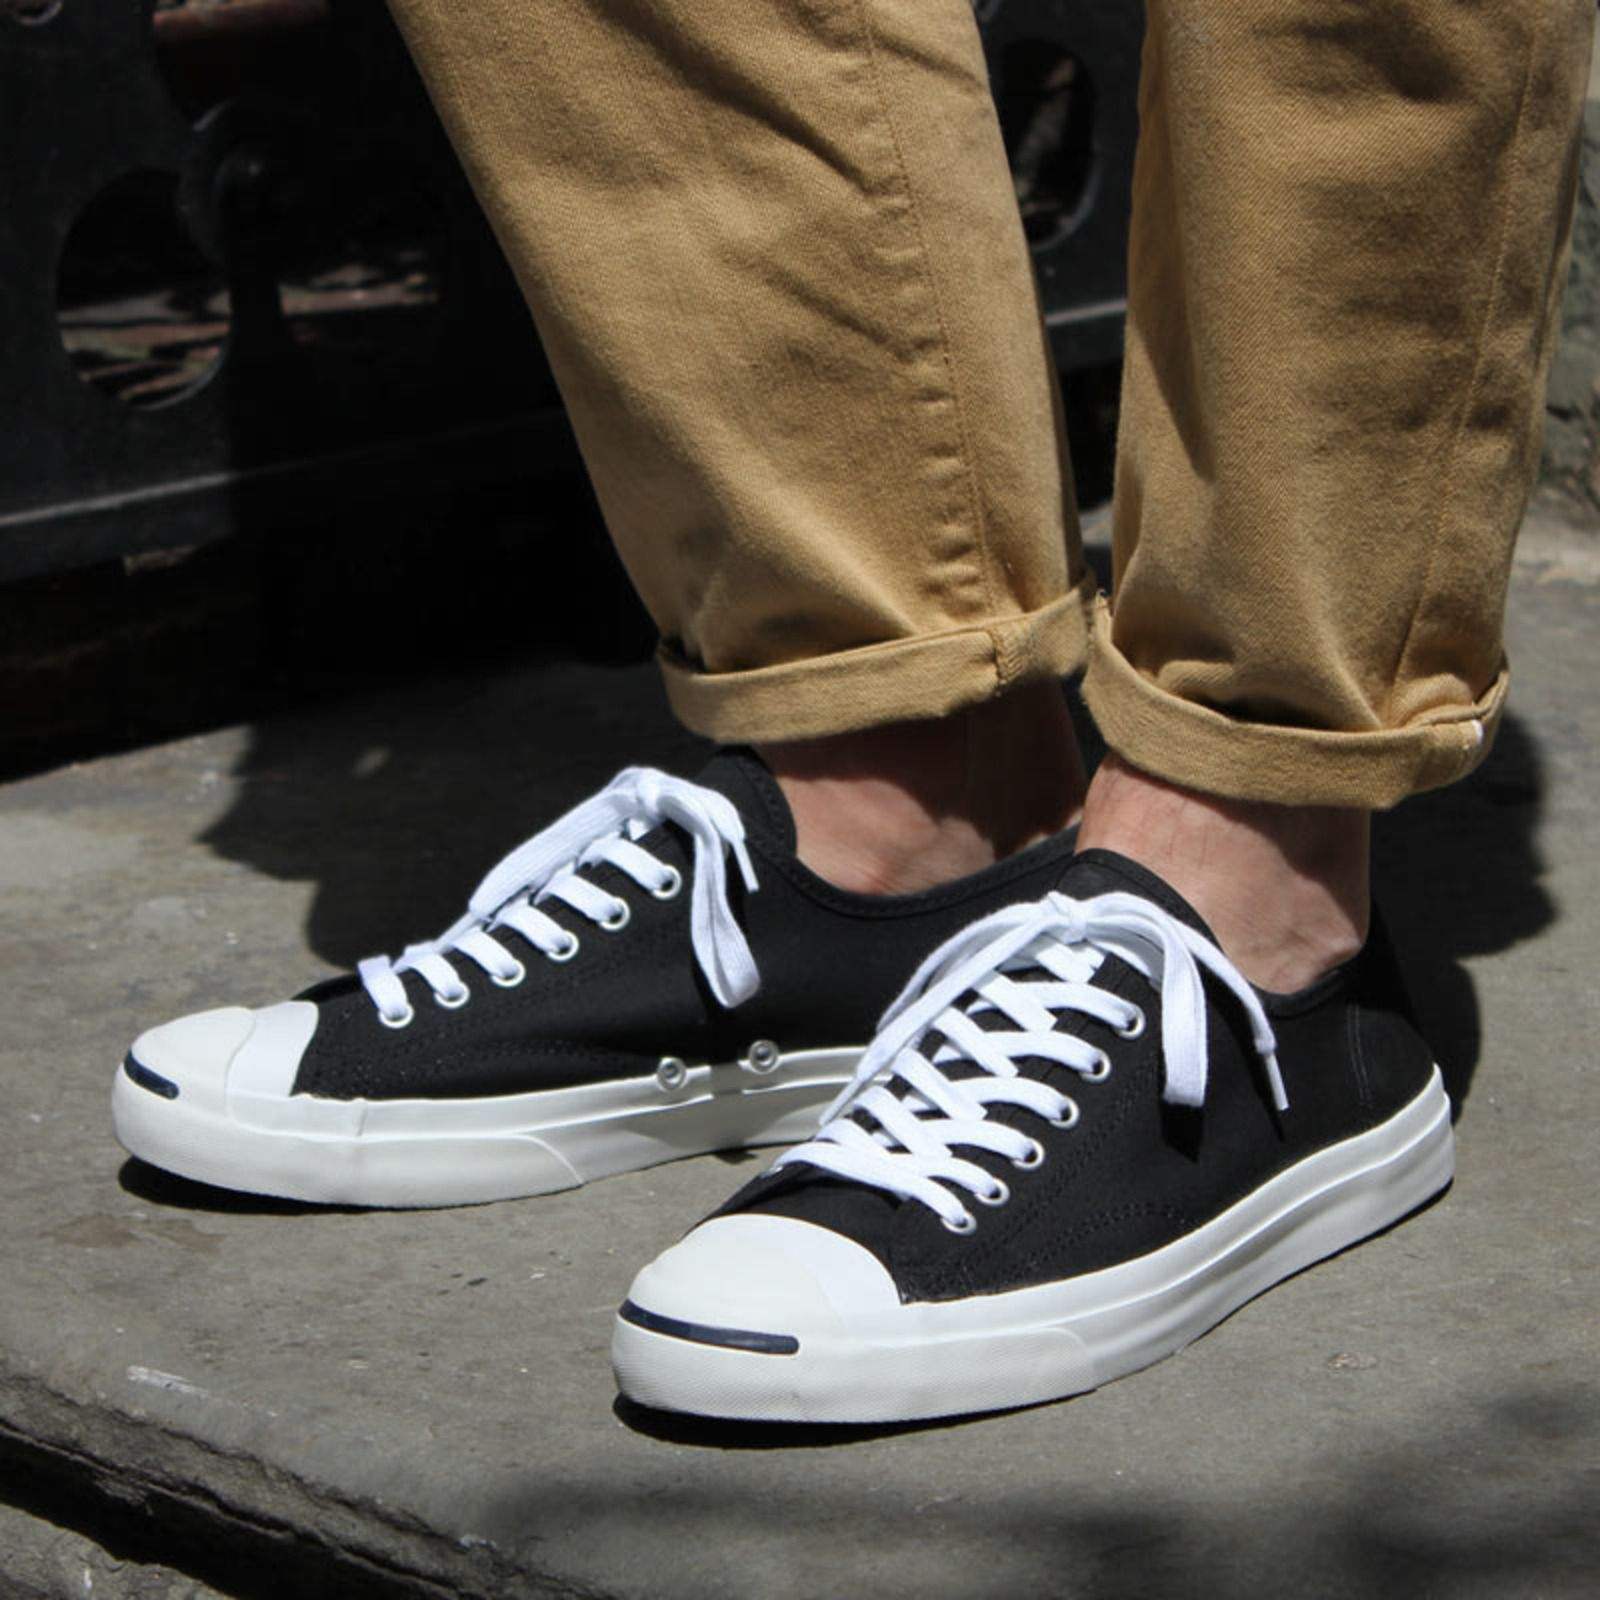 converse jack purcell homme